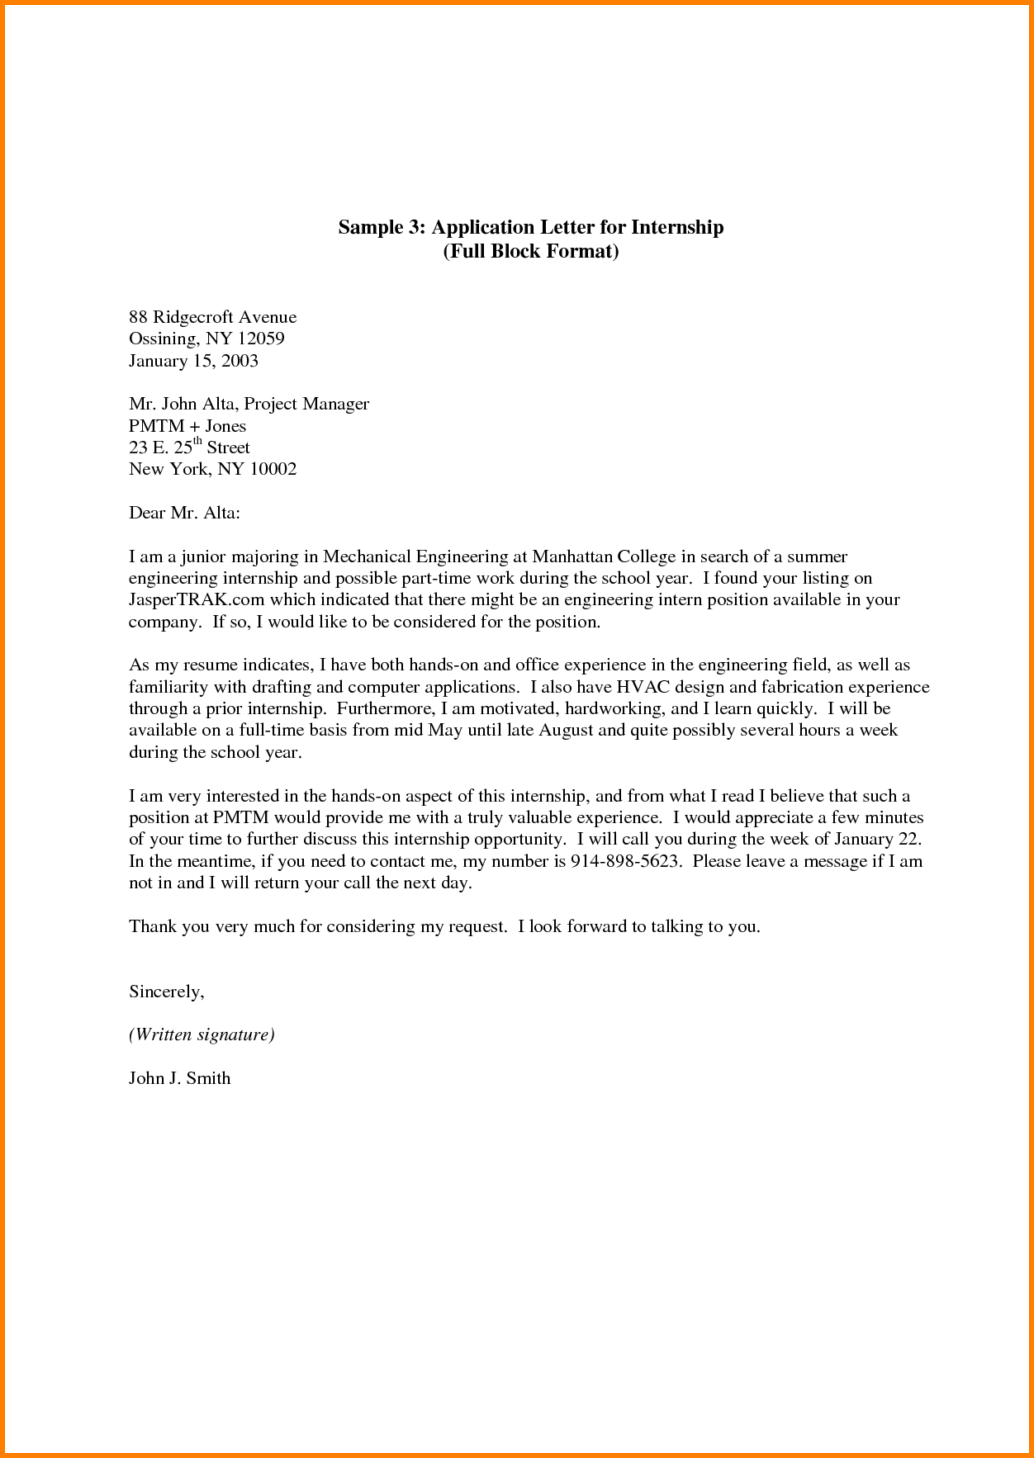 College Cover Letter Inspiration Full Block Letter Others Application And Format Example Sales Decorating Inspiration